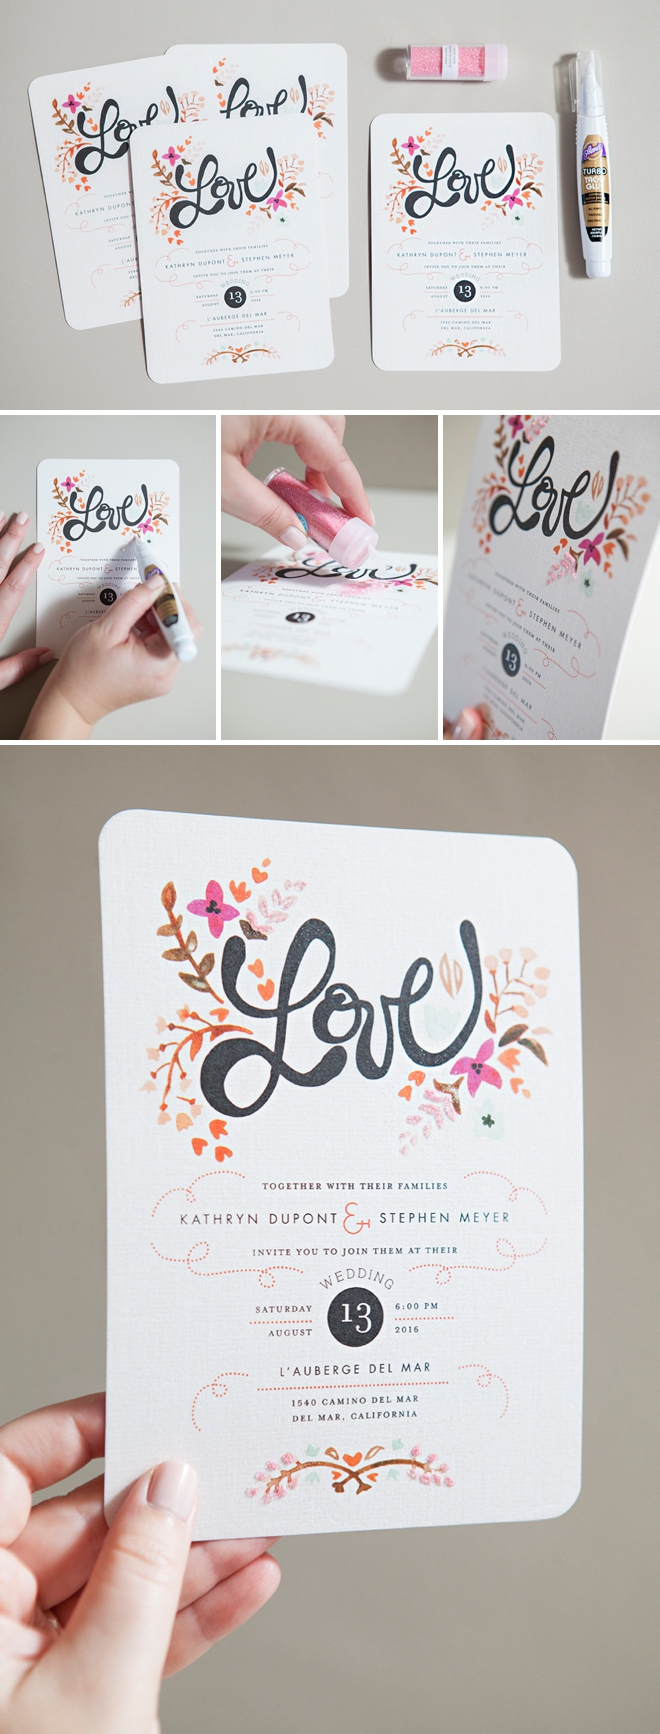 DIY - how to glitter store bought wedding invitations